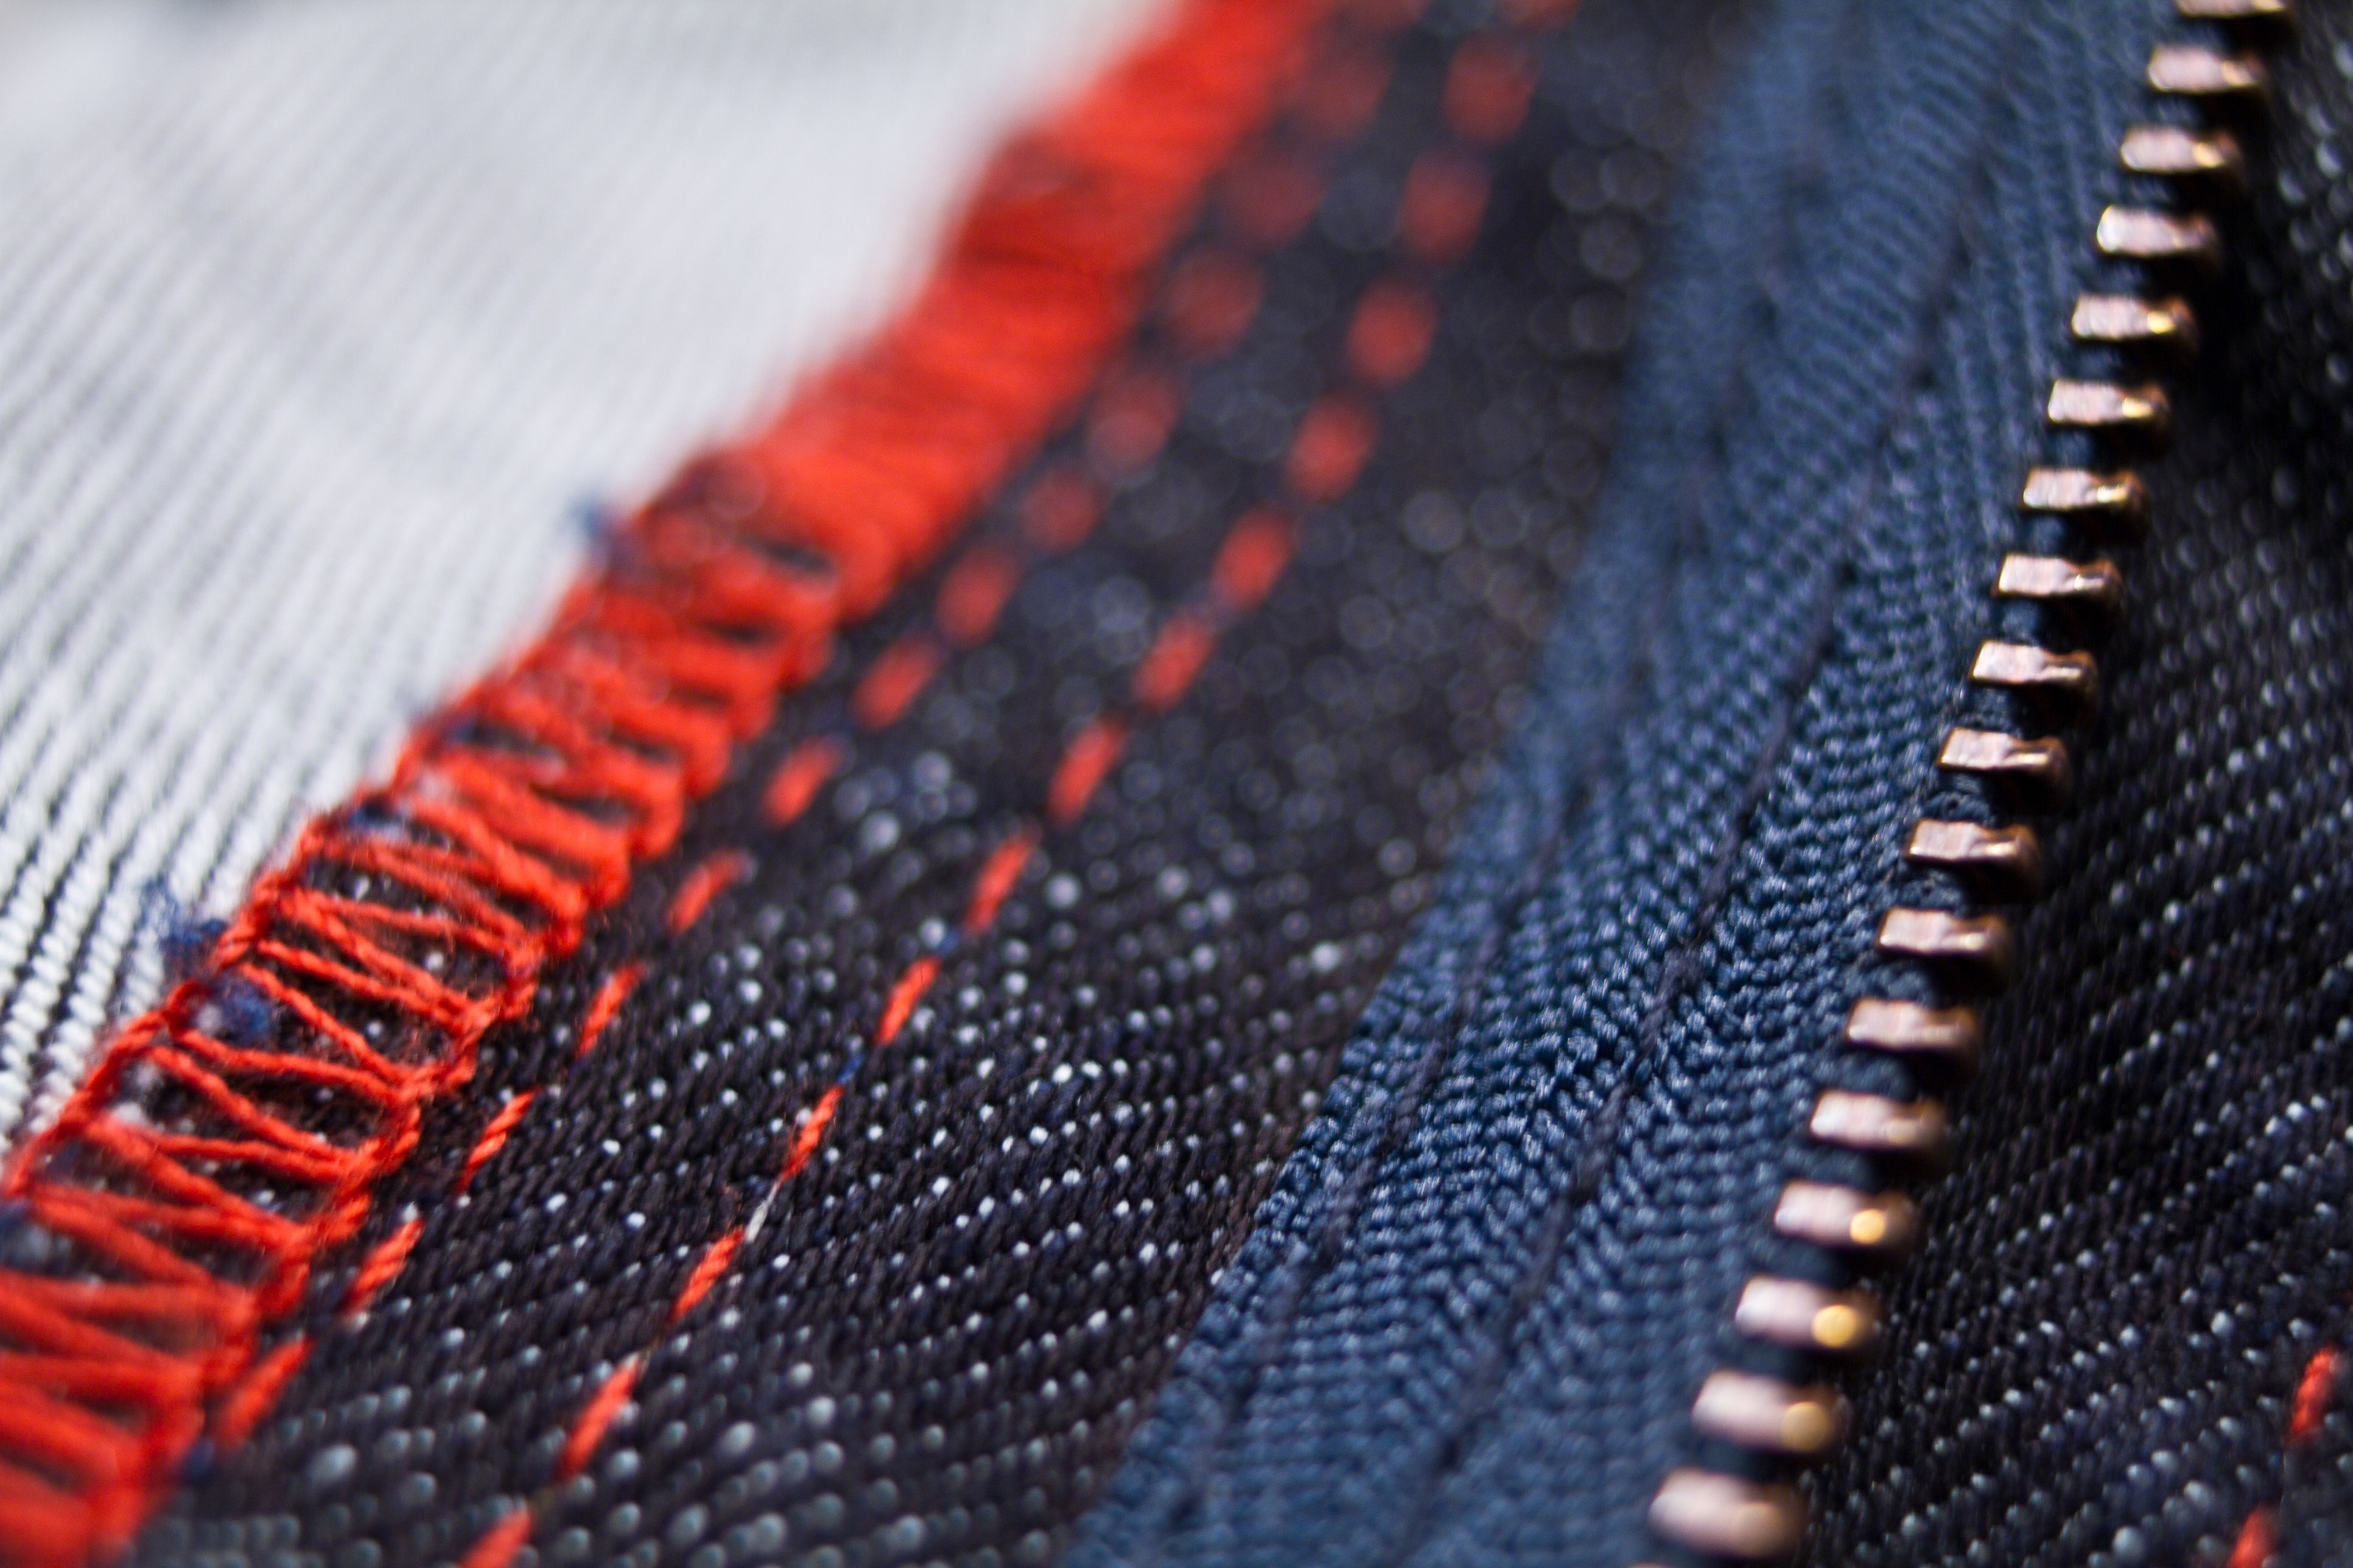 Red and blue jeans close up of zipper and stitching